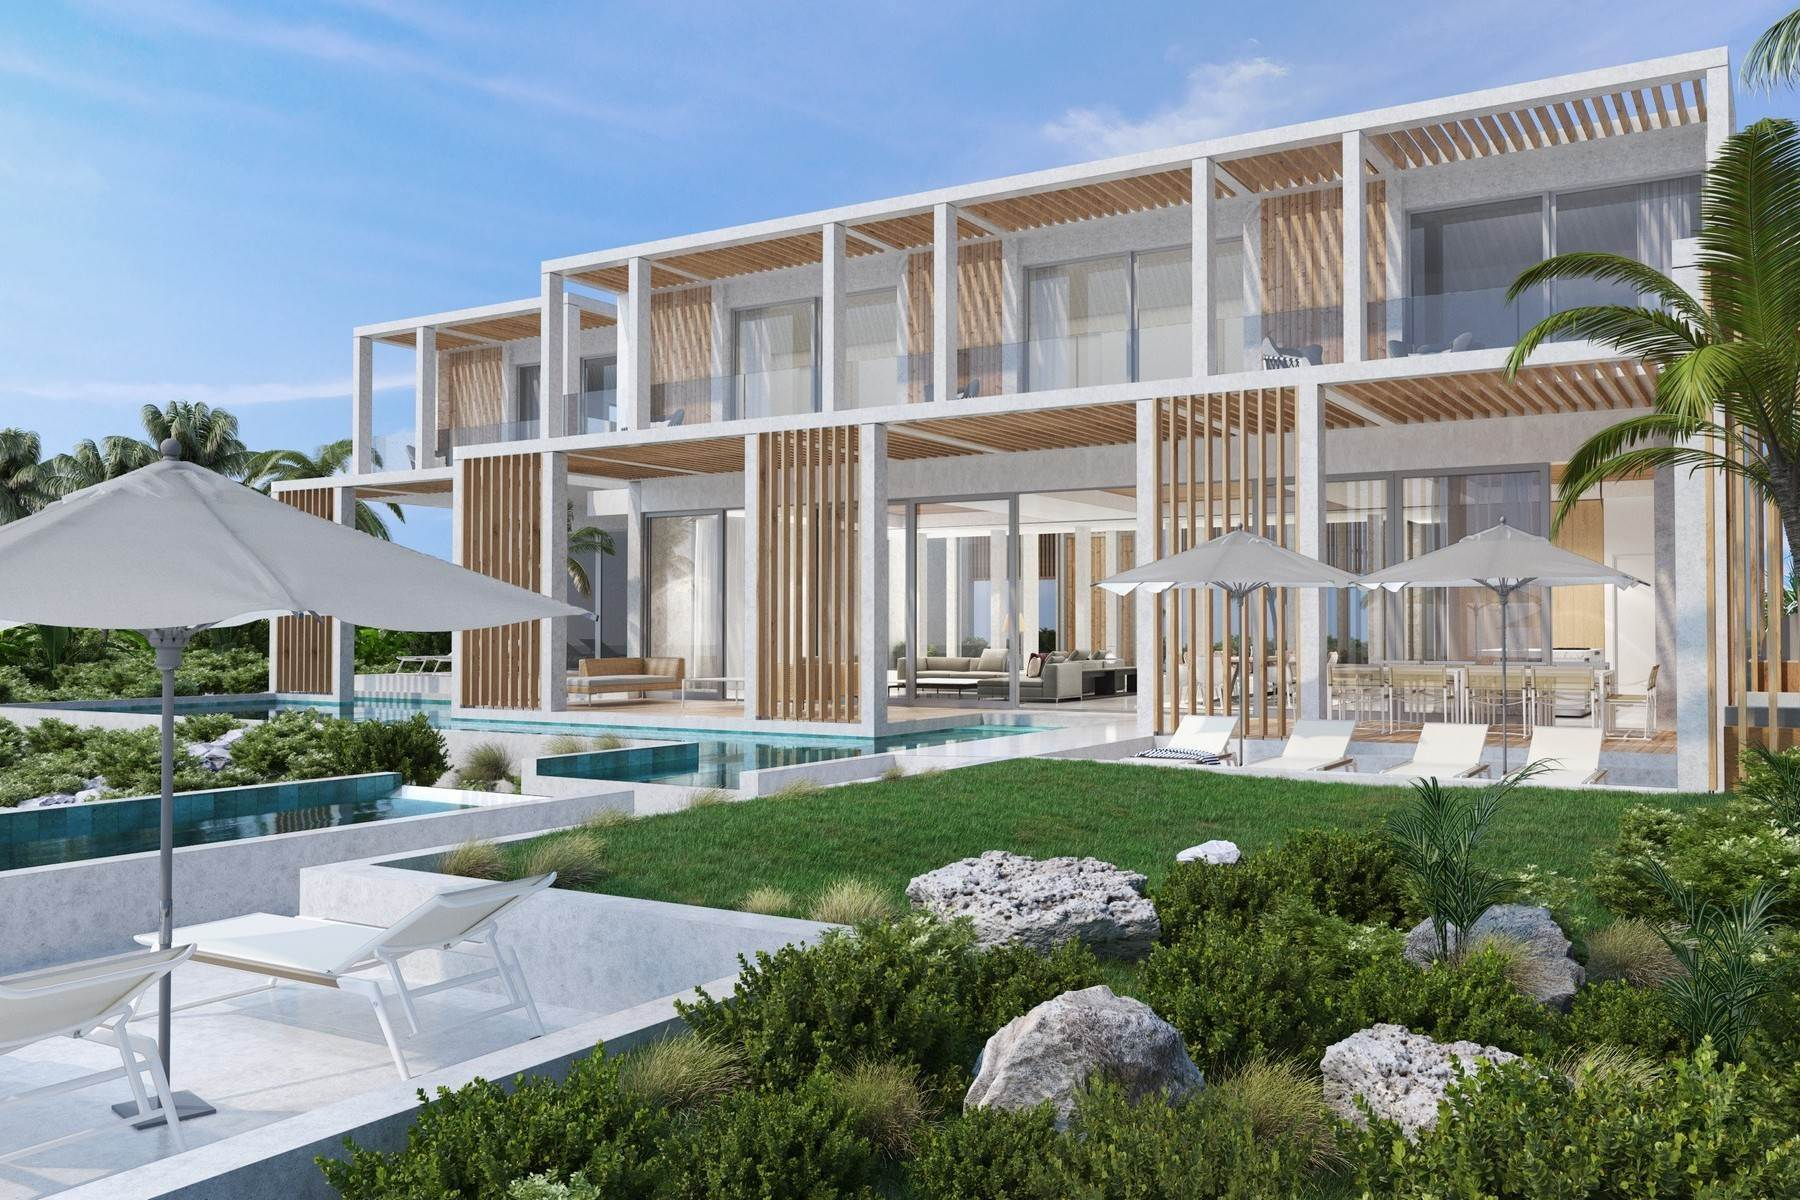 2. Single Family Homes for Sale at SOUTH BANK - THE OCEAN ESTATE I - BANKS VILLA 7 South Bank, Long Bay, Providenciales Turks And Caicos Islands